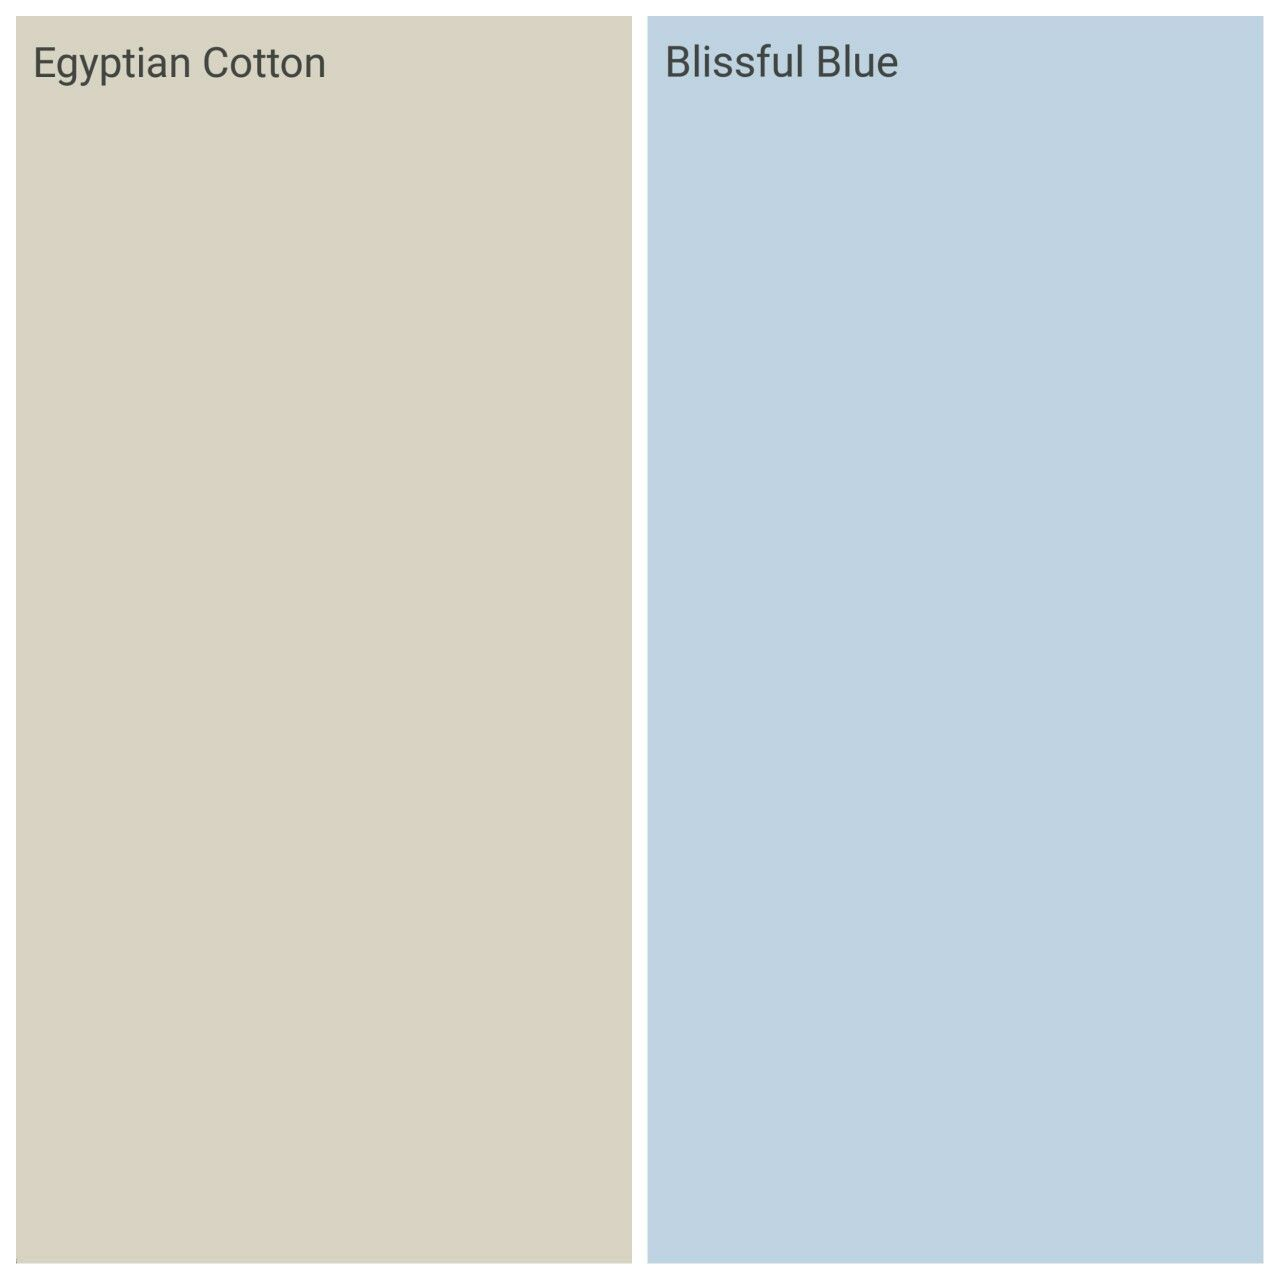 dulux blissful blue and egyptian cotton guest bedroom. Black Bedroom Furniture Sets. Home Design Ideas